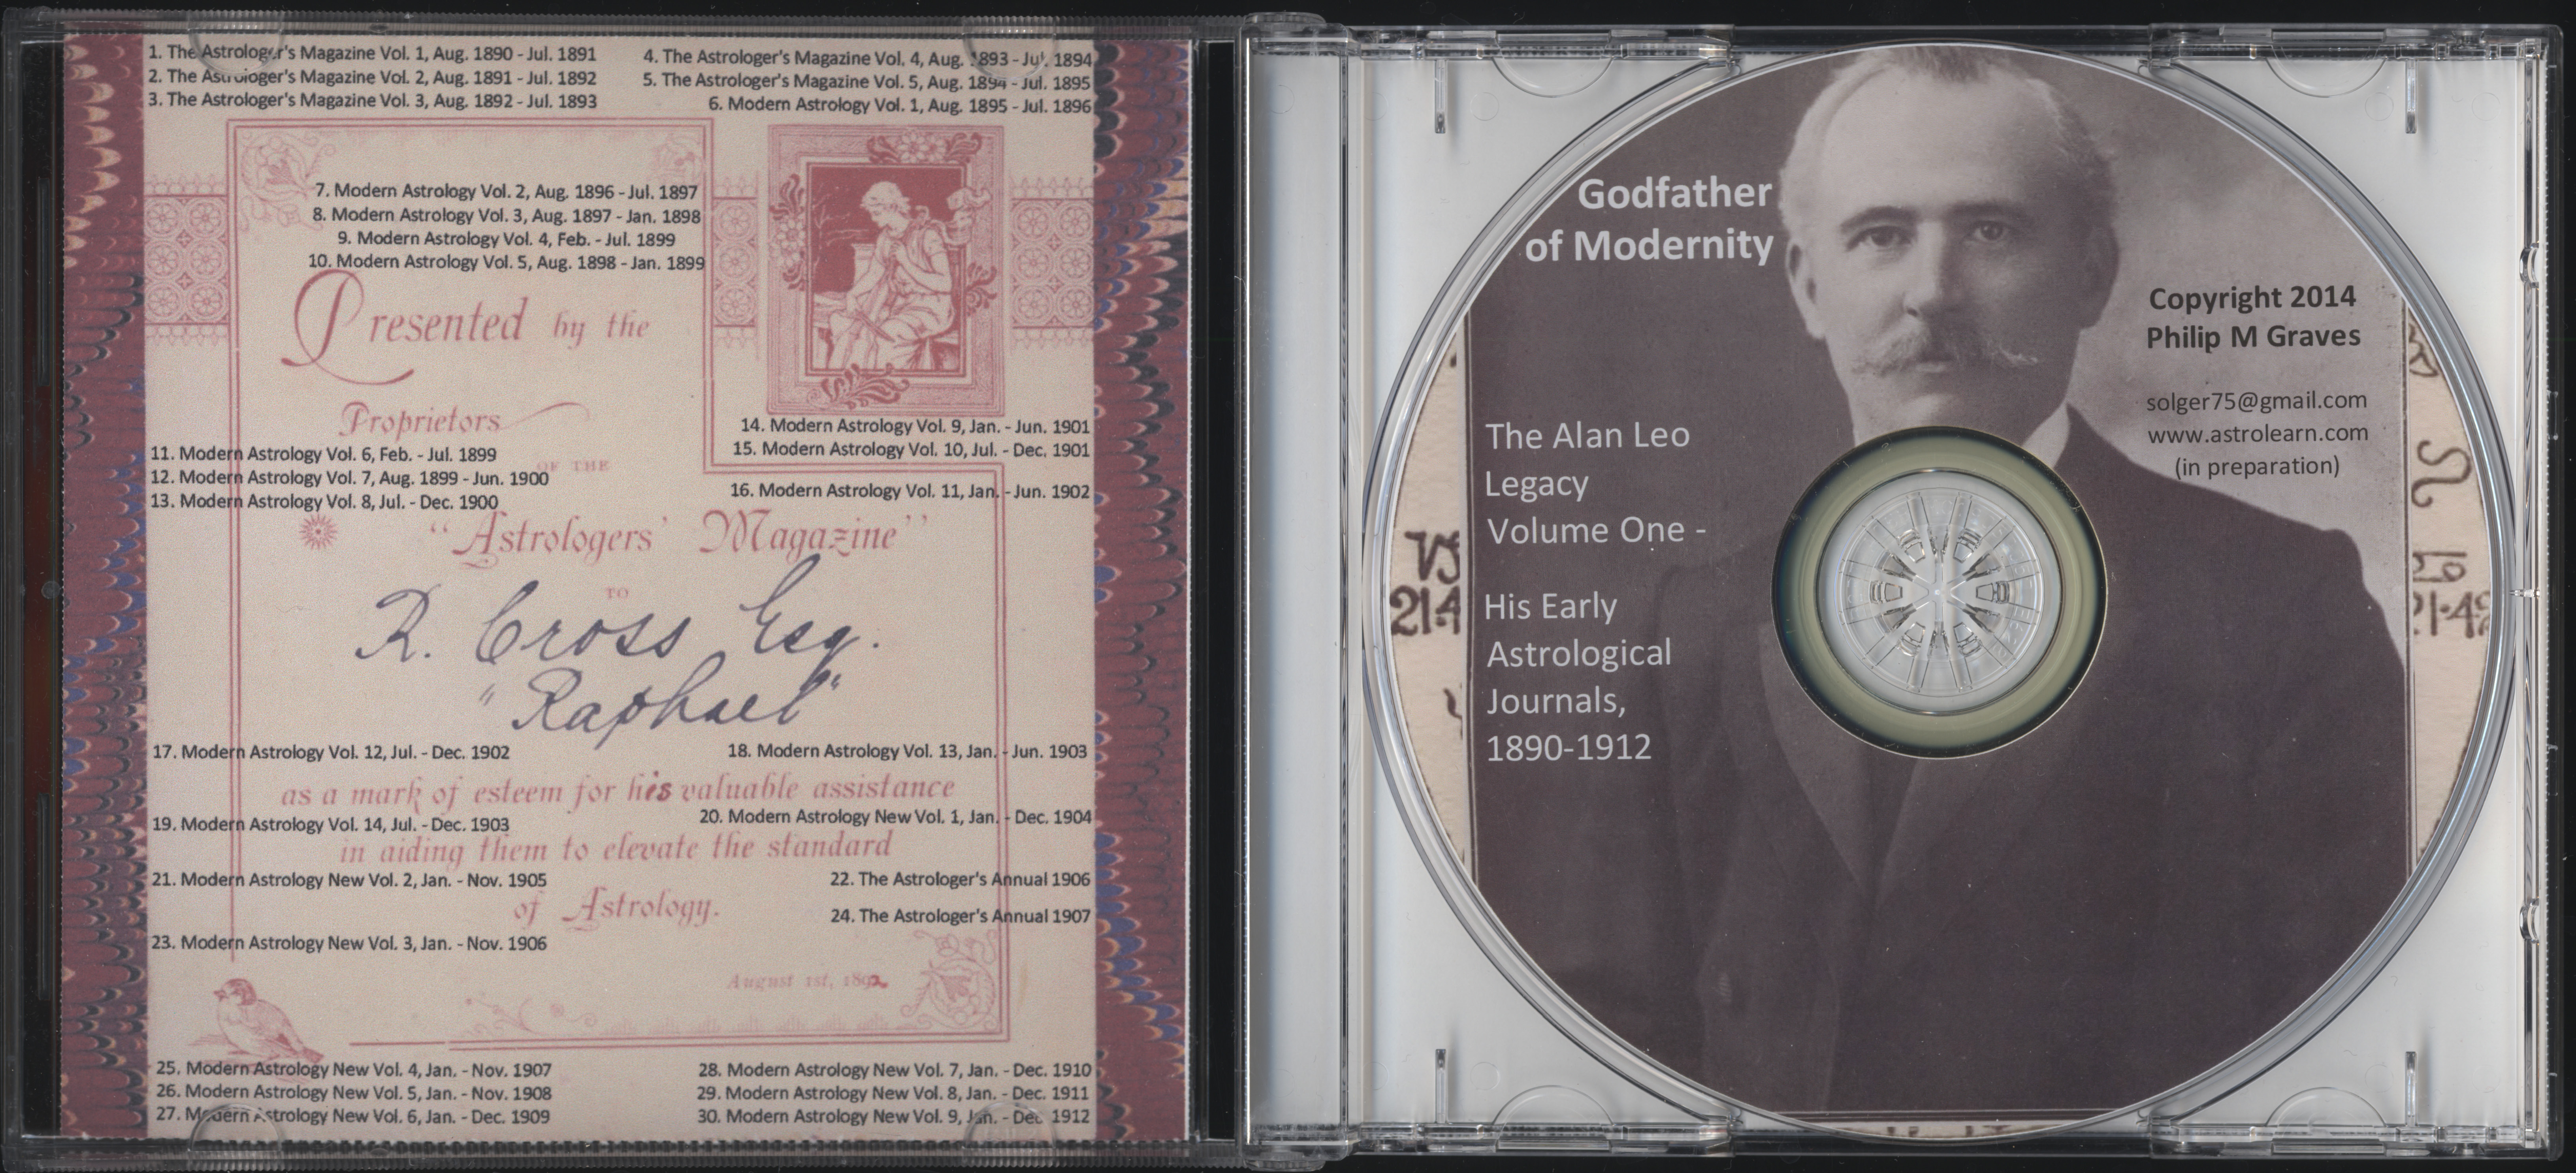 Godfather of Modernity: the Alan Leo Legacy Volume One,: Early Astrological Journals, 1890-1912, DVD, Open View